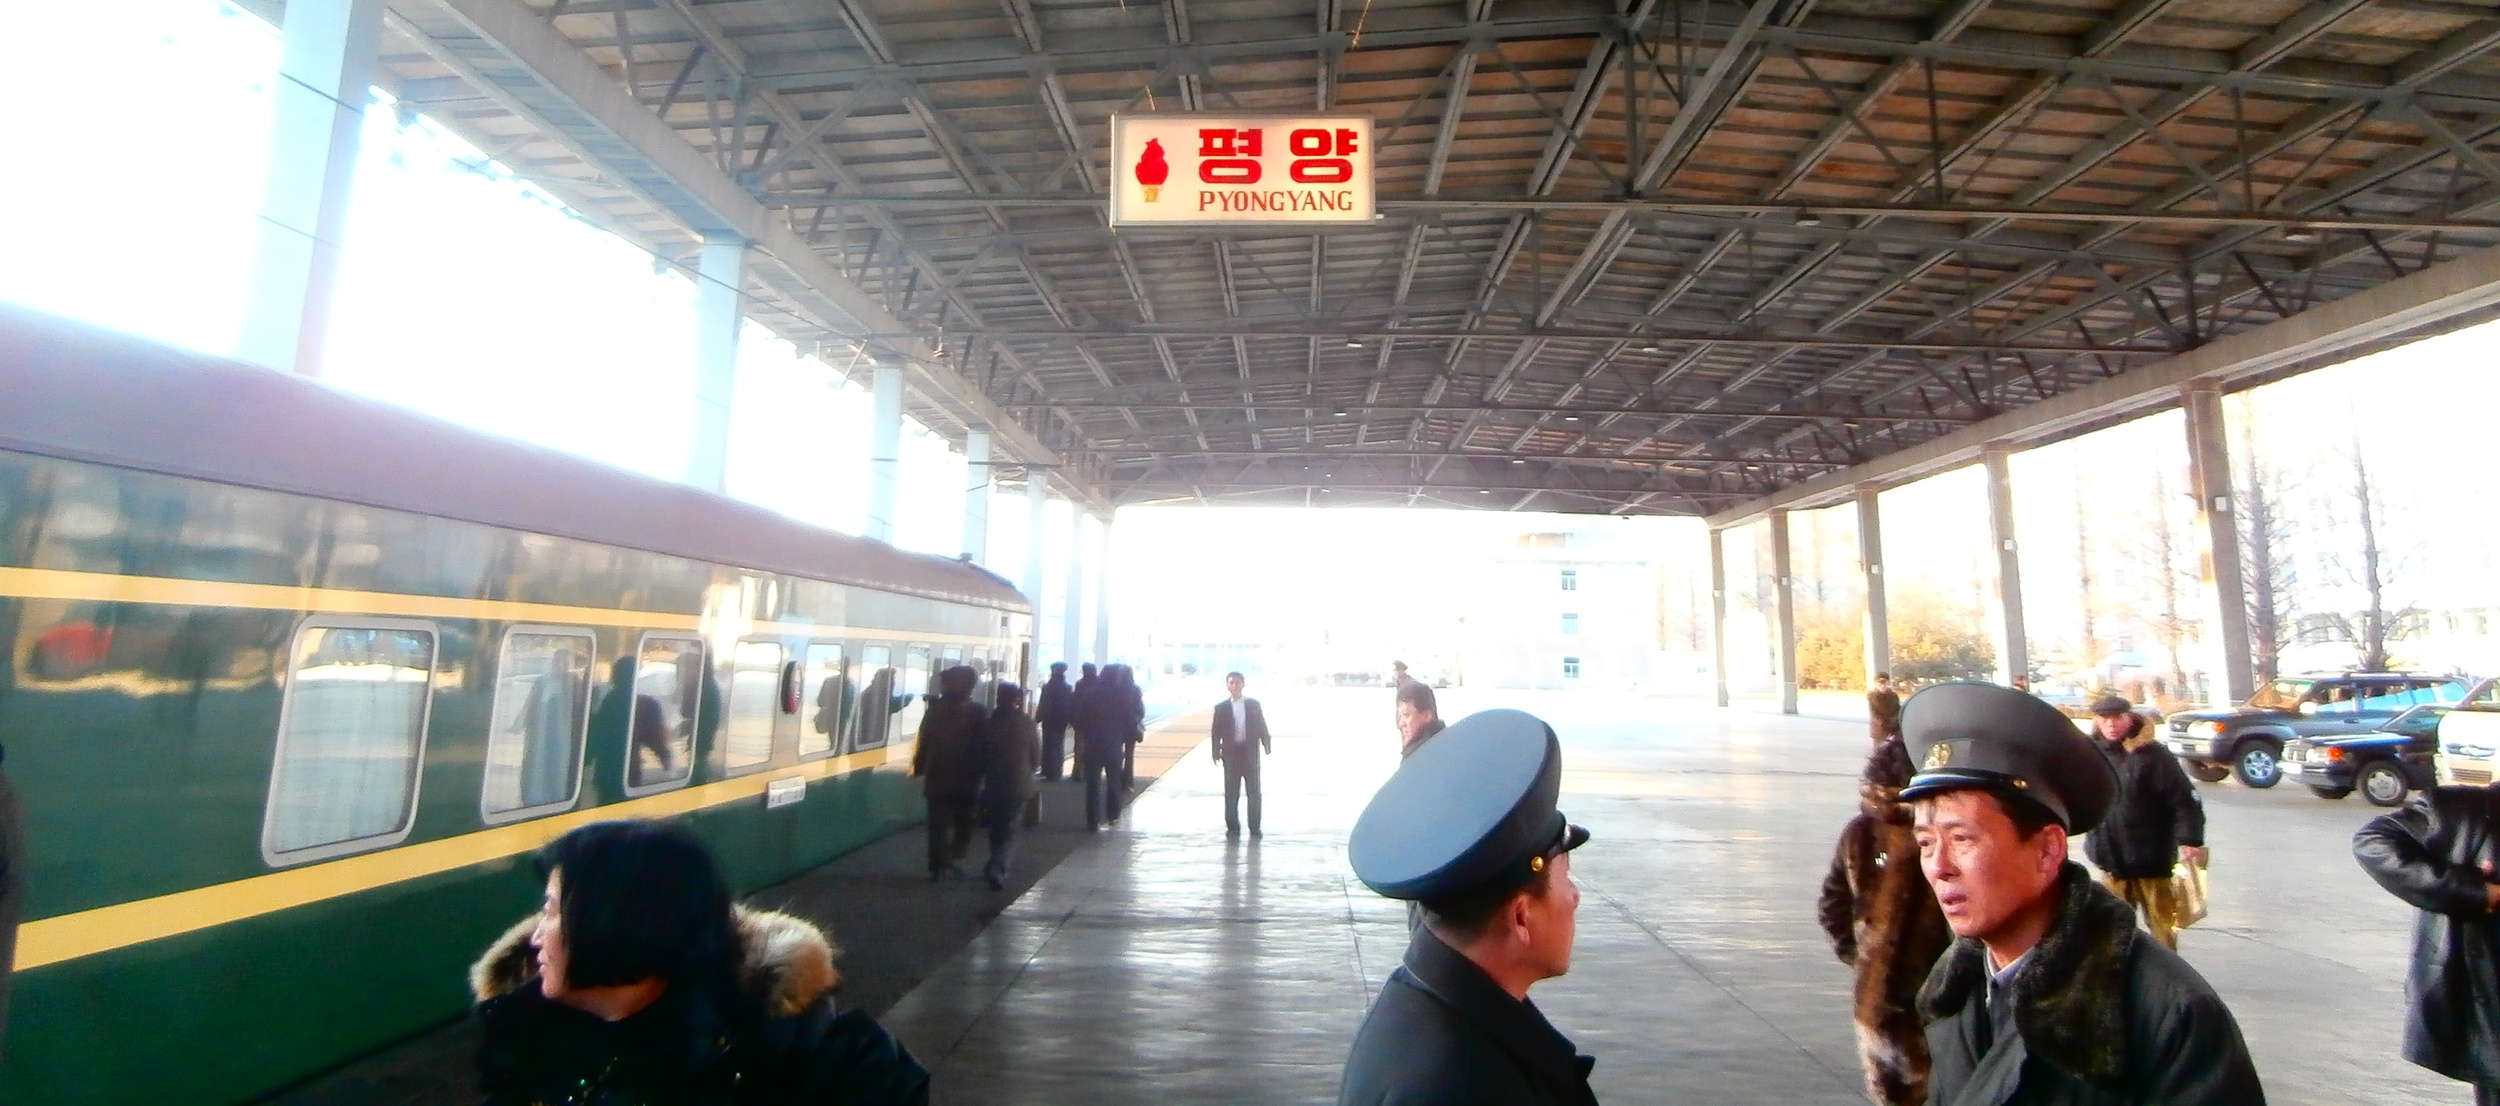 Pyongyang Station, North Korea